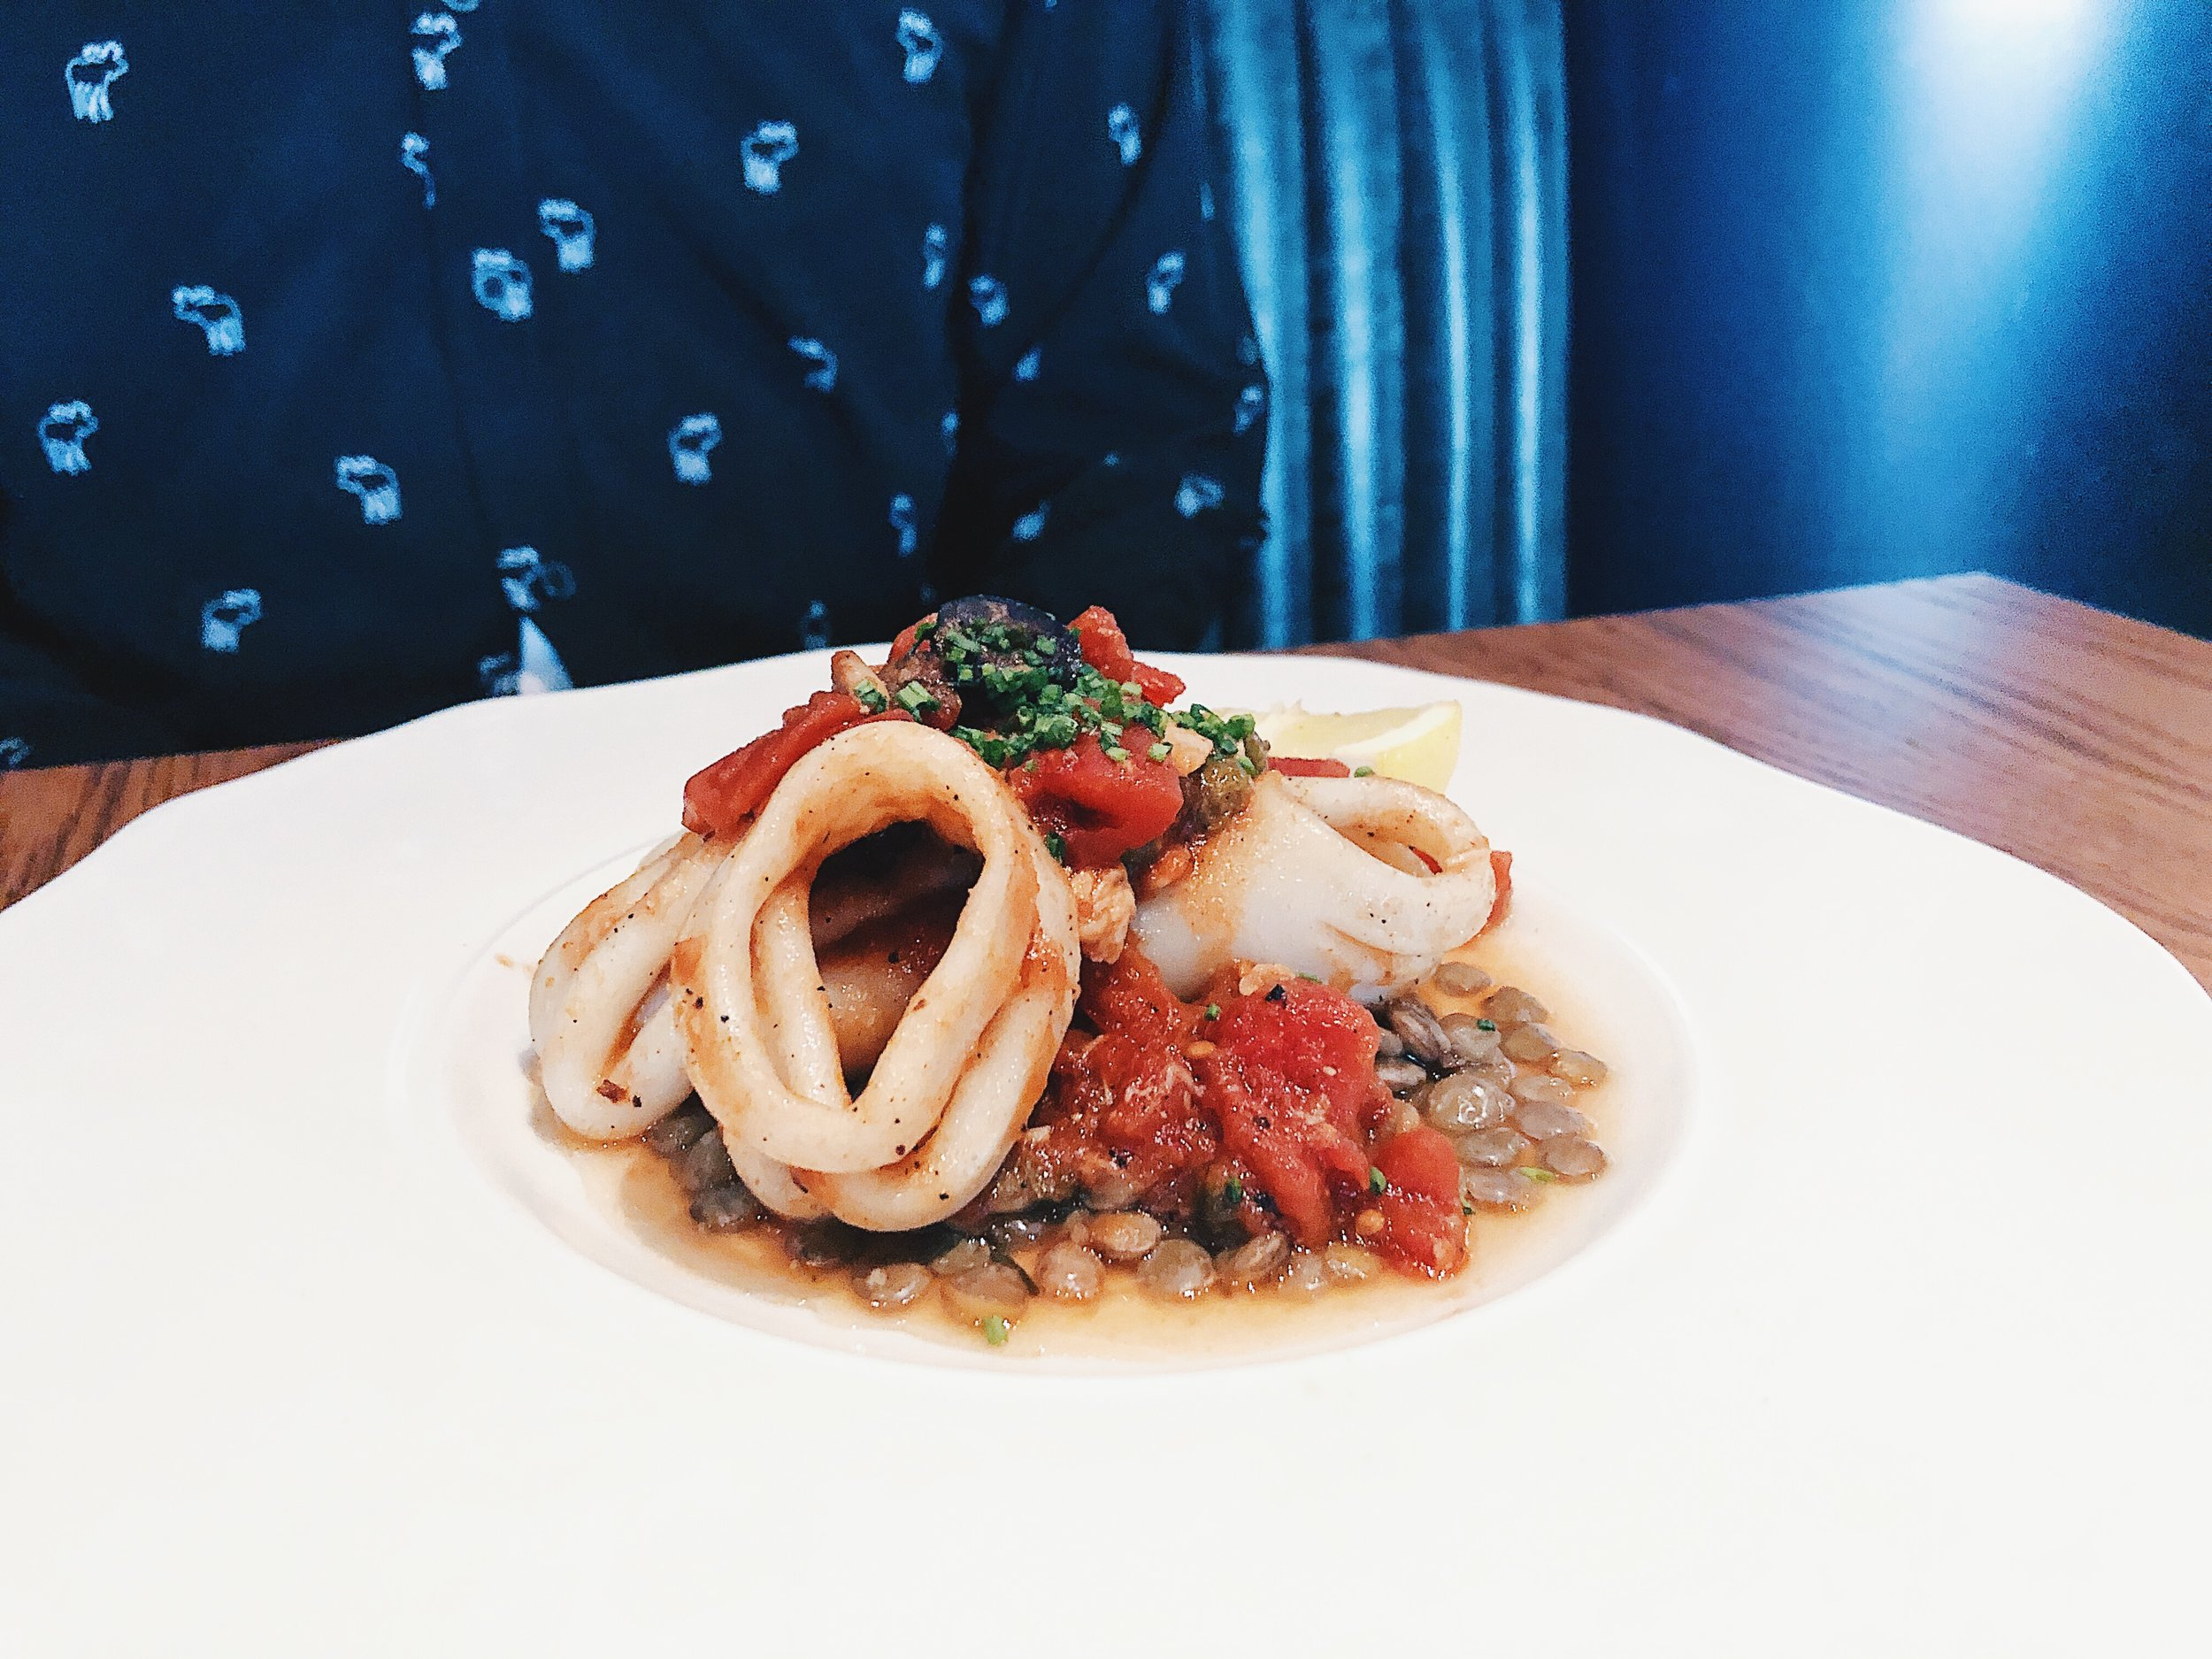 WOOD-GRILLED SQUID  - puttanesca-style, capers, lemon, tomato, olives, anchovy sauce, braised Cumbrian lentils, grilled lemon